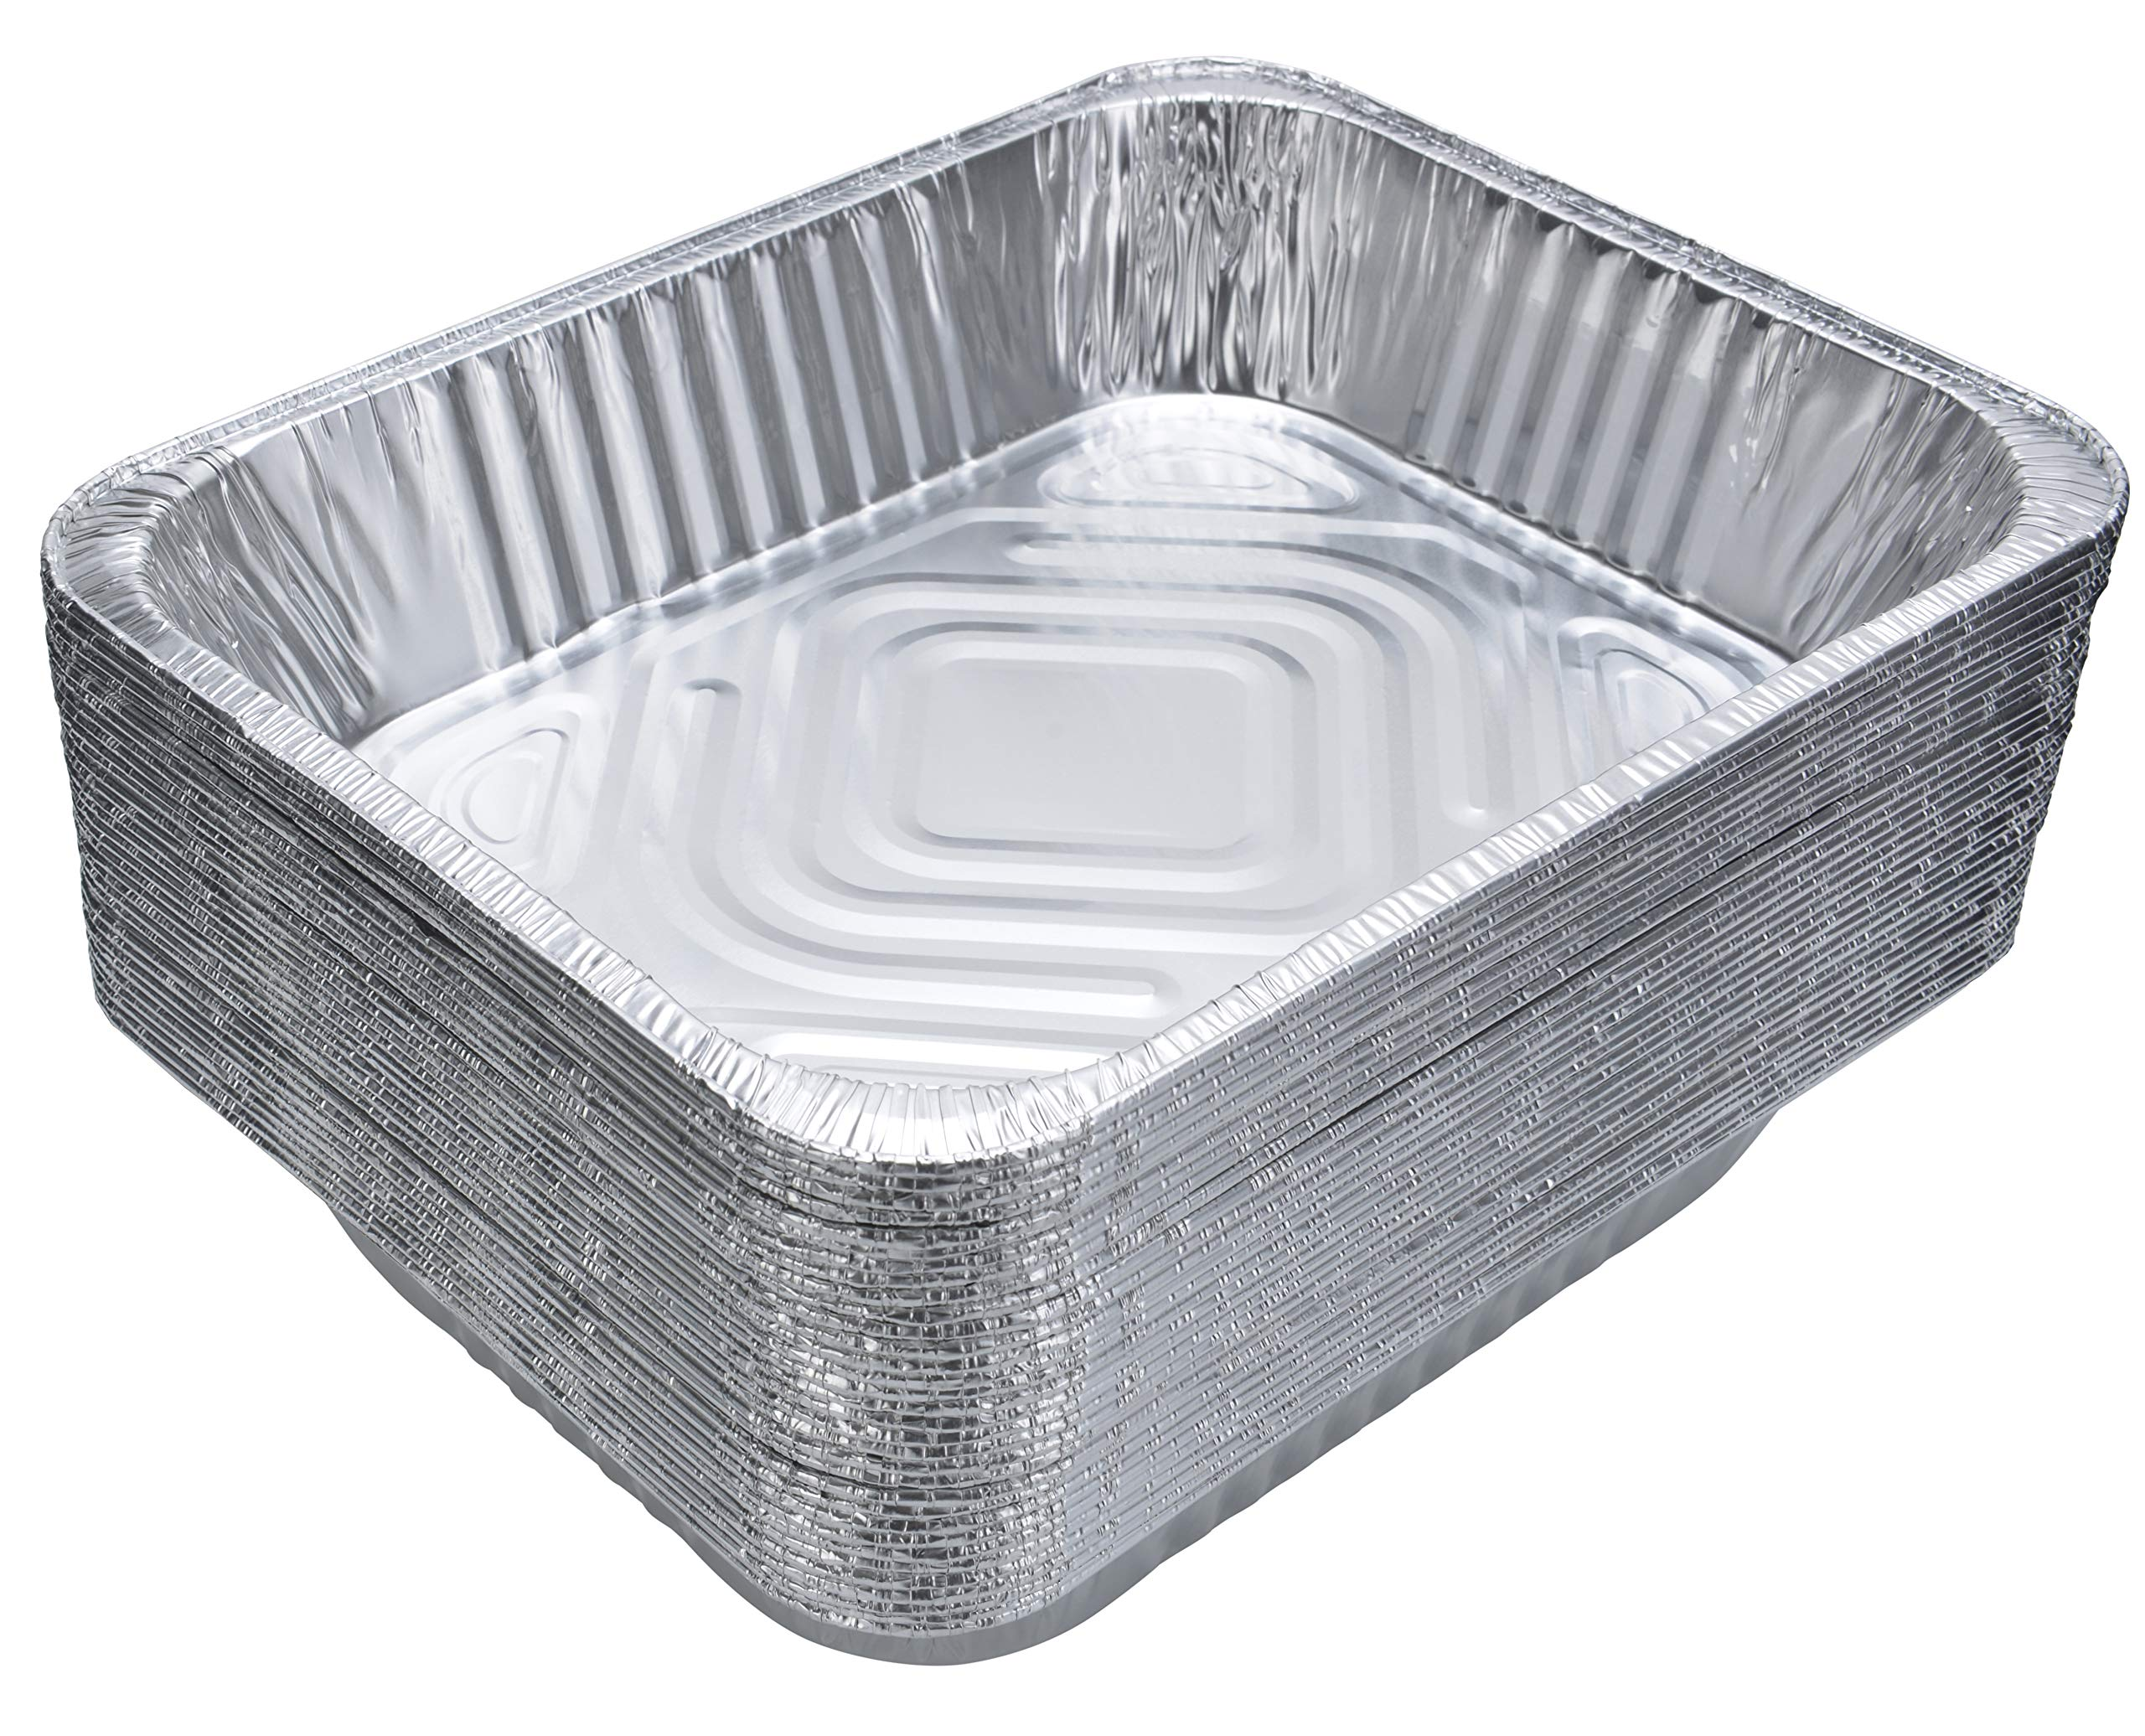 DOBI Aluminum Pans (30-Pack) - Disposable Aluminum Foil Steam Table Deep Pans, Half Size Chafing Pans - 12 1/2'' x 10 1/4'' x 2 1/2''